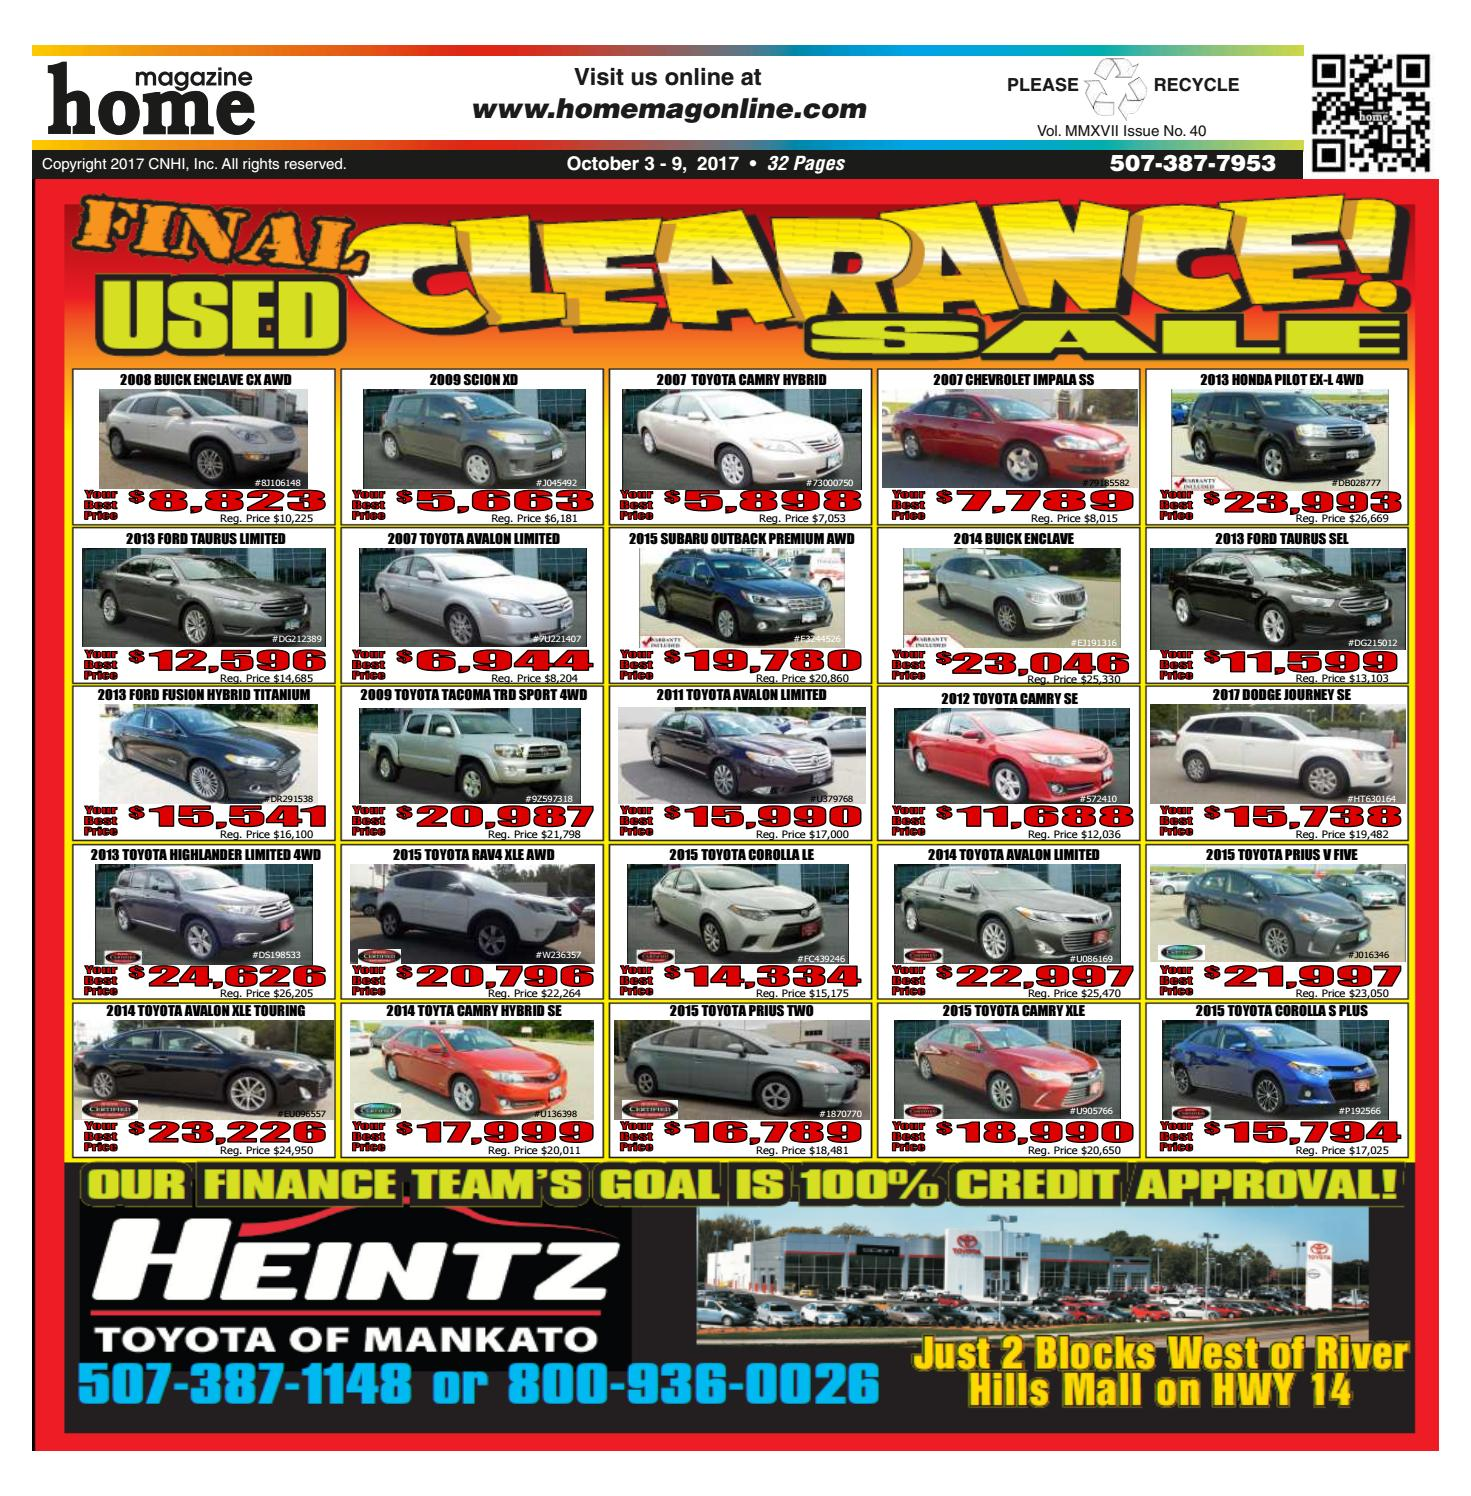 2014 Toyota Avalon Xle Premium: Home Magazine Issue 10/03/17 By Home Magazine Online